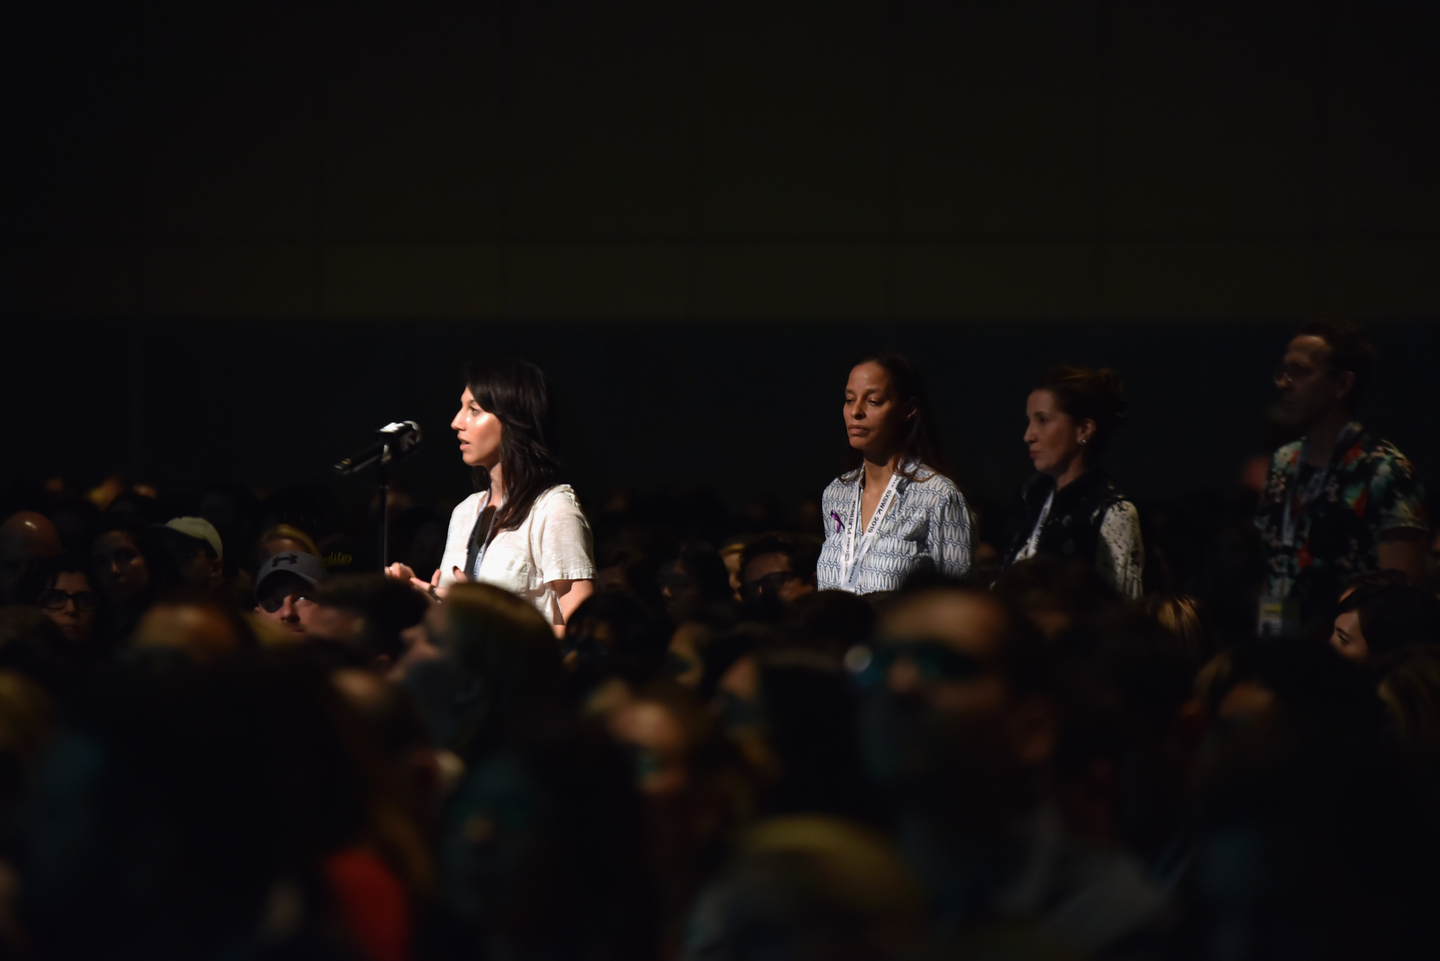 Audience members line up to ask her questions.